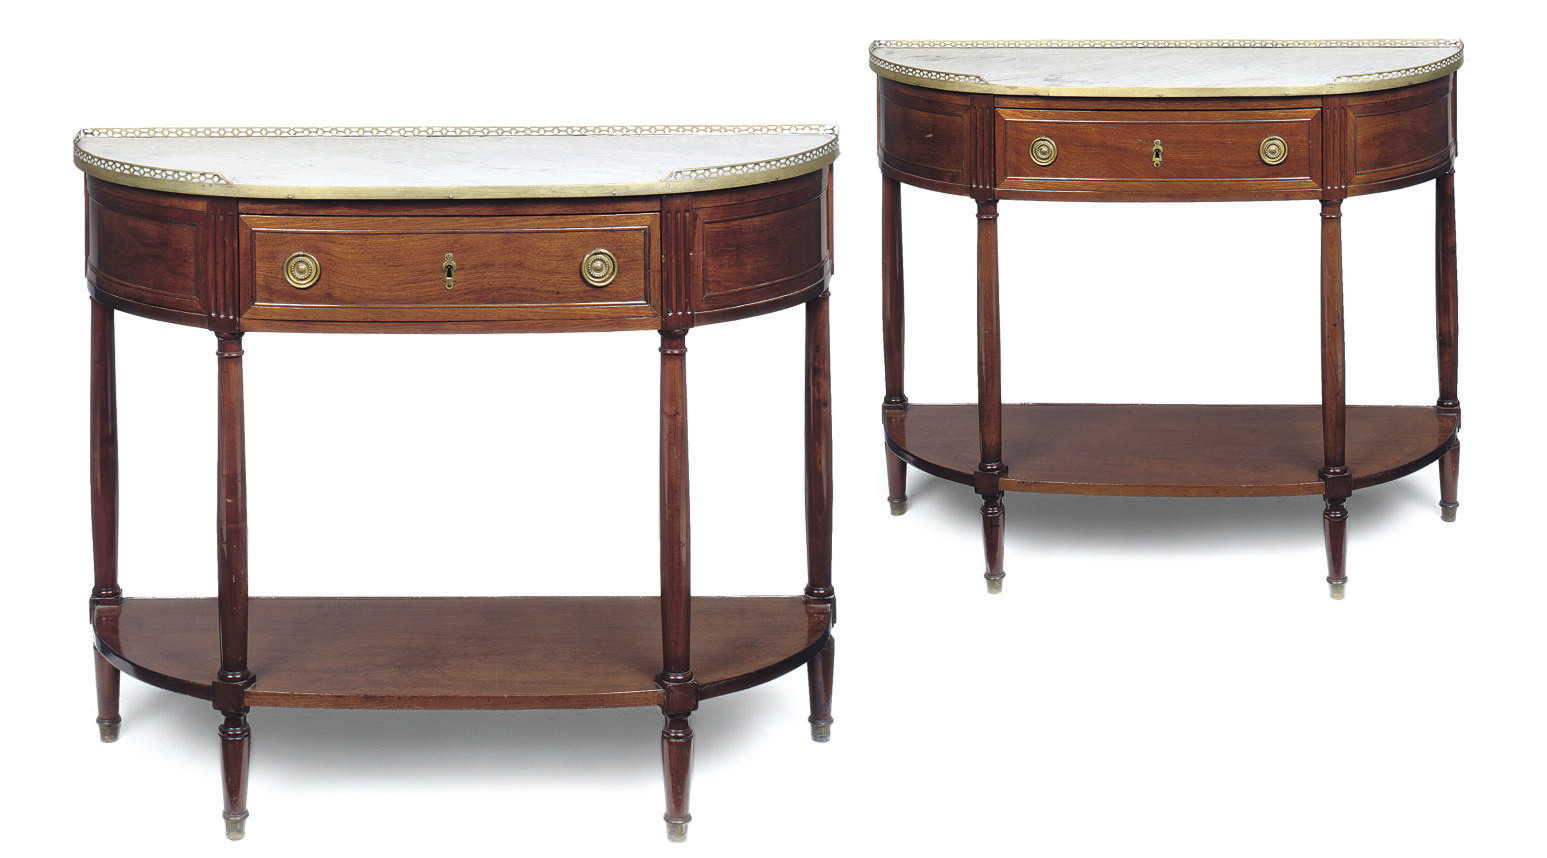 A PAIR OF FRENCH MAHOGANY CONS